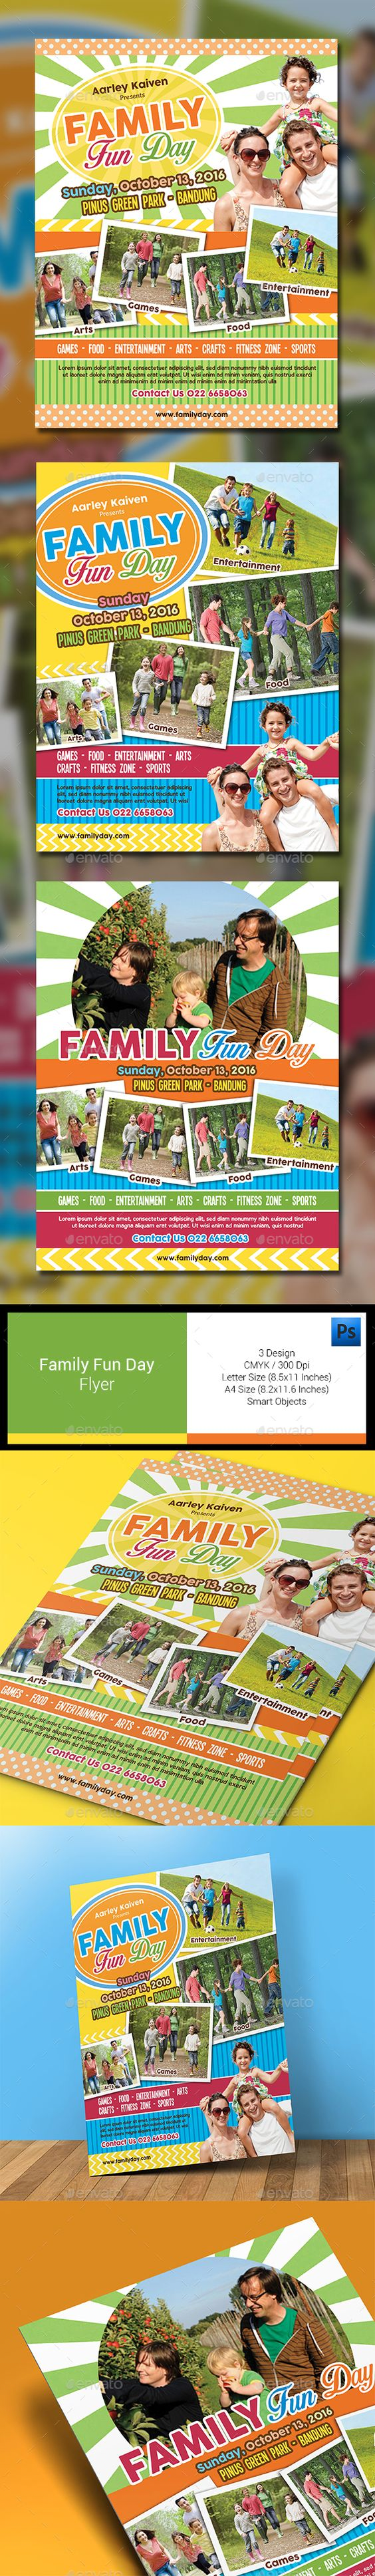 family day flyer family day flyer template and templates buy family day flyer by arifpoernomo on graphicriver this family day flyer template can be used for promote your family fun day event etc